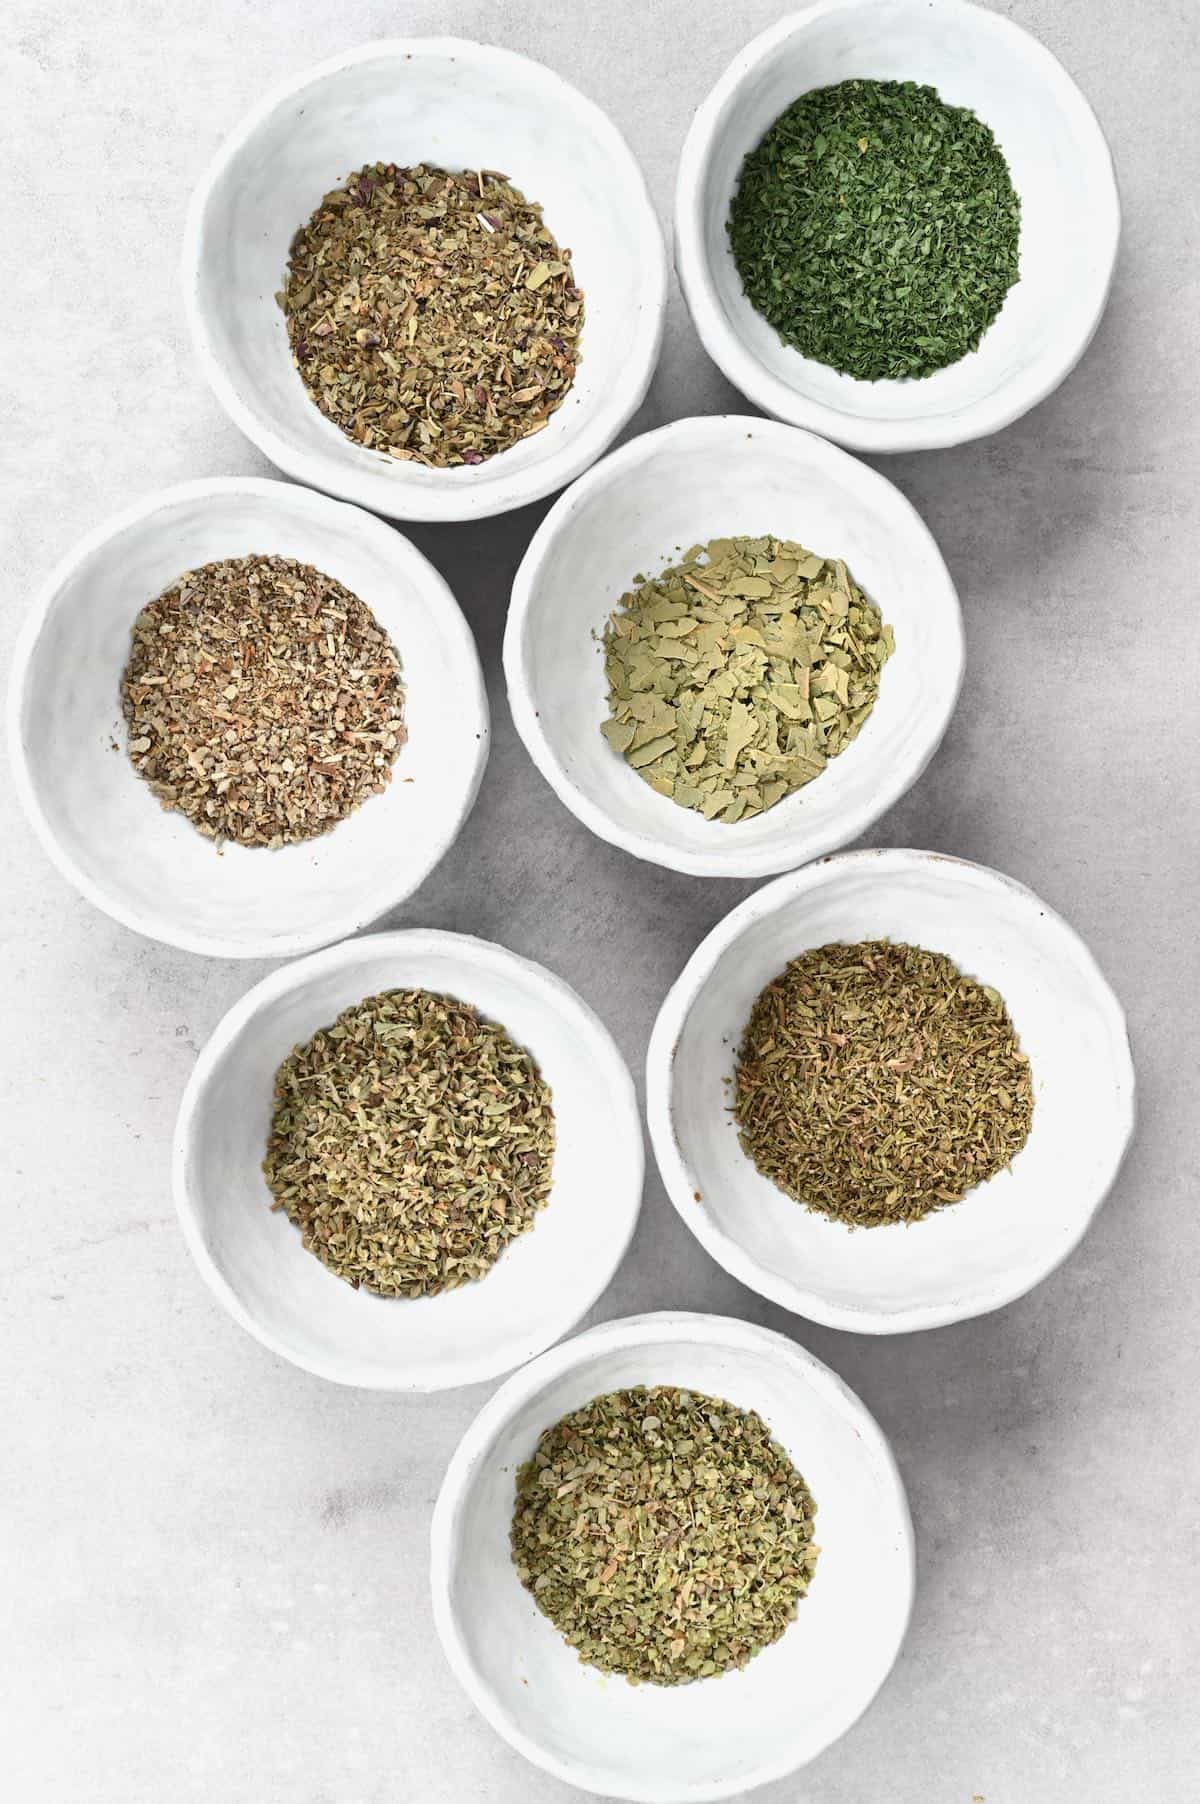 Seven little bowls with different dried herbs